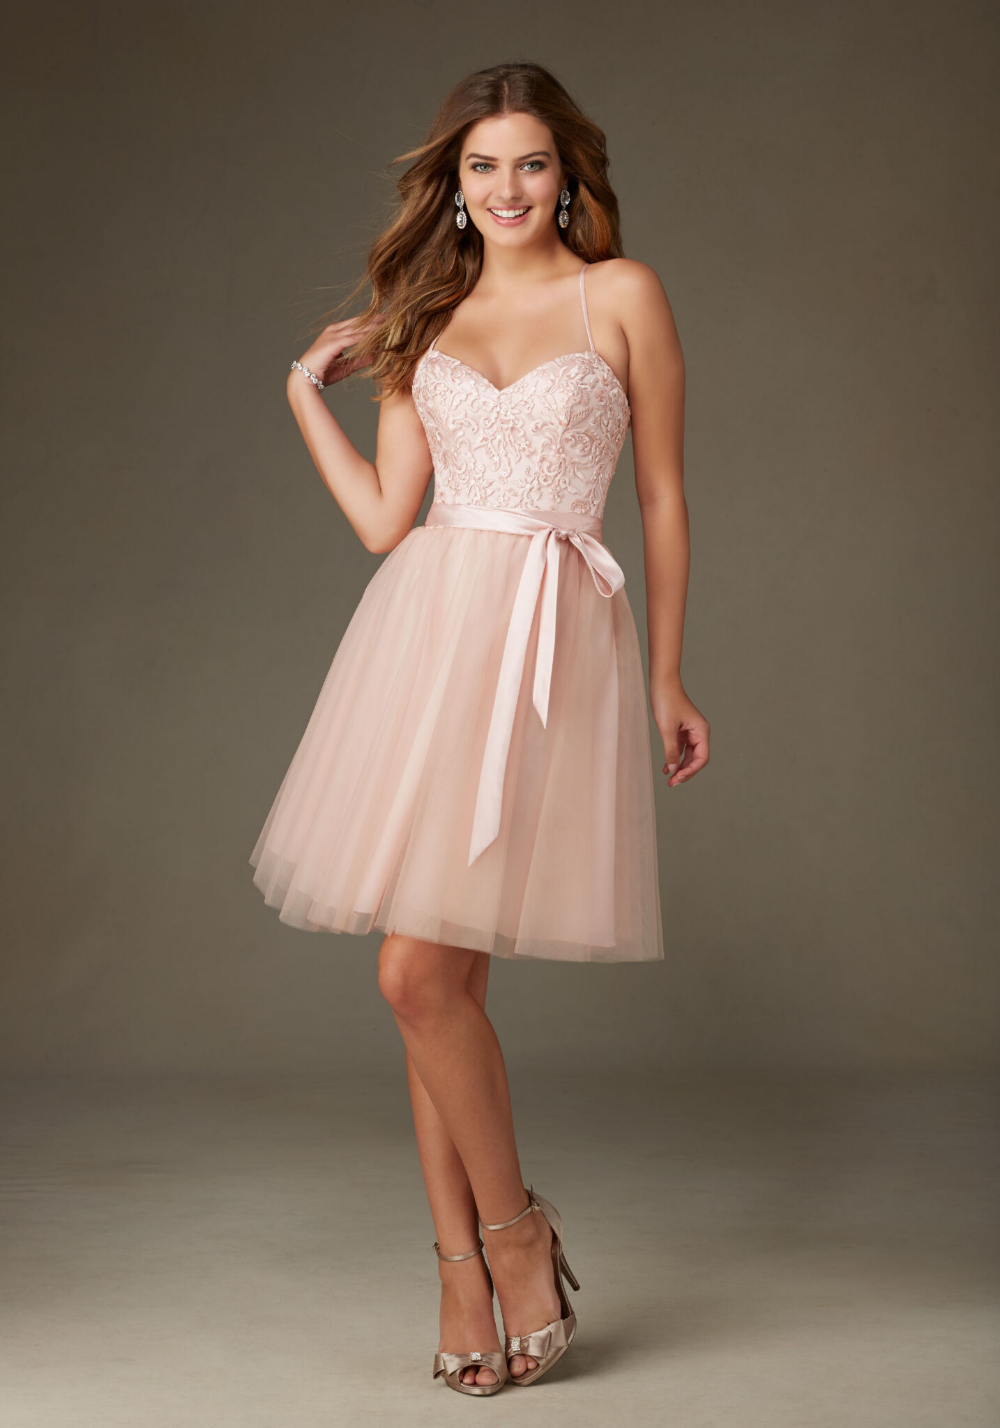 Ballerina Style Short Morilee Bridesmaid Dress In Tulle With Embroidery And Beading Morilee Bridesmaid Dresses Mesh Bridesmaids Dress Ballerina Style Dress [ 1428 x 1000 Pixel ]